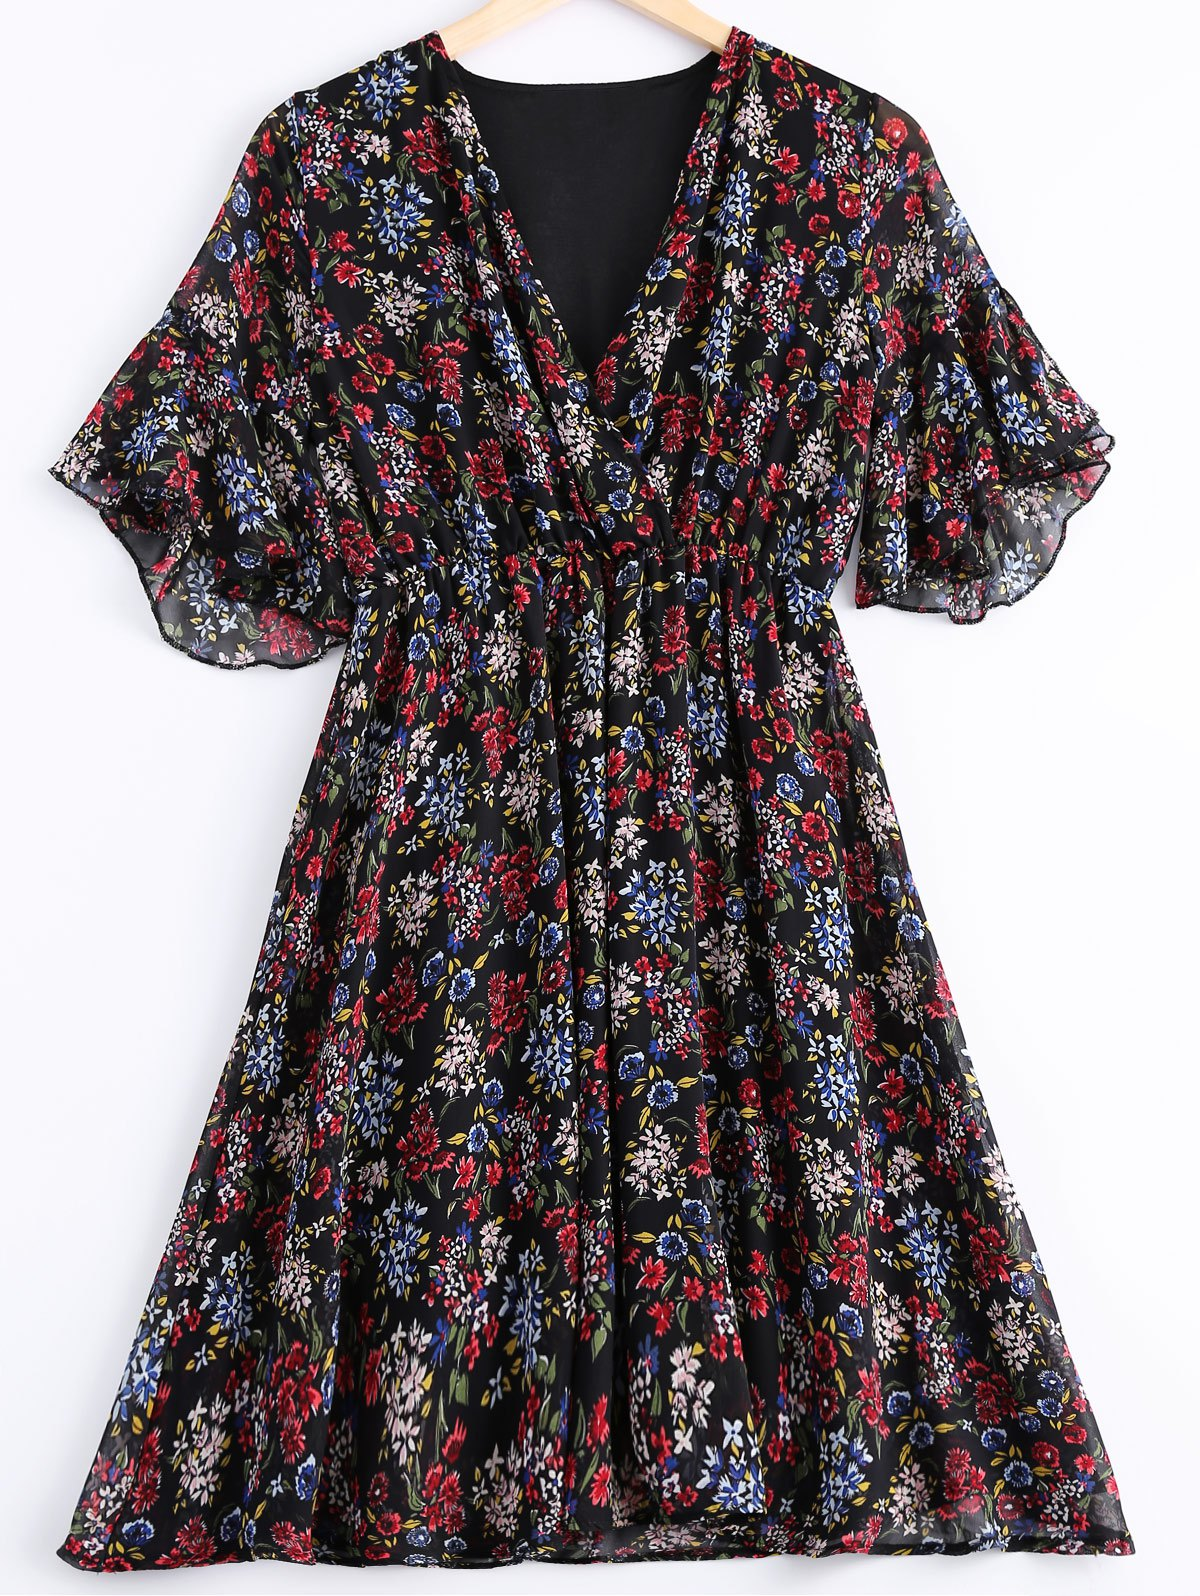 Fashionable Floral Prints V-Neck Flounce Short Sleeves Dress For Women - BLACK ONE SIZE(FIT SIZE XS TO M)